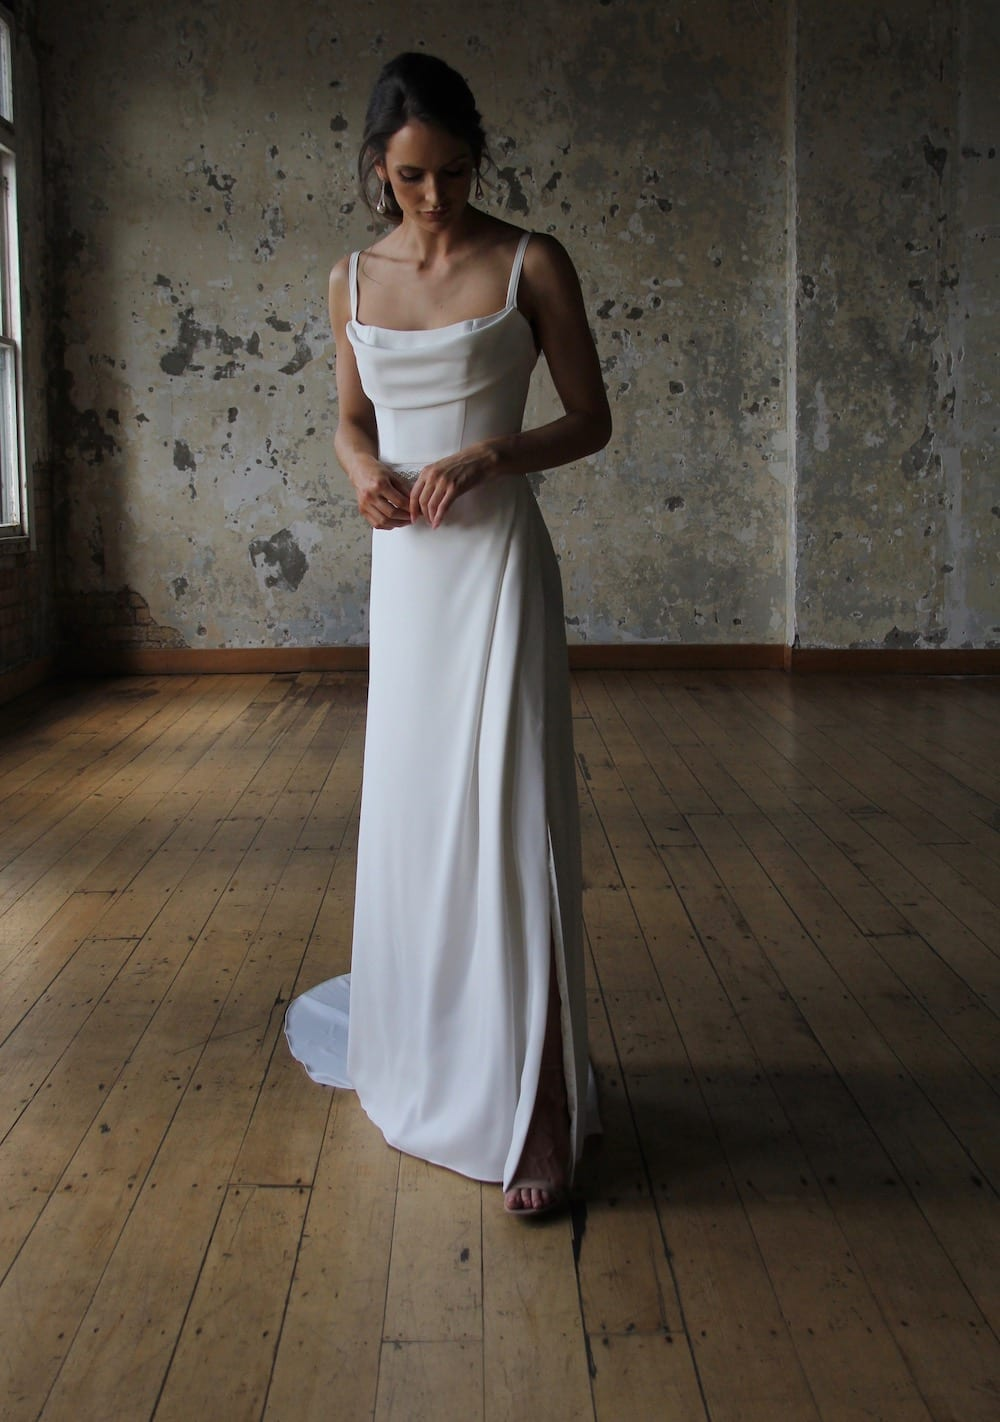 Female model wearing Vinka Design Modern Muse Wedding Dress. In chic warehouse the front detail of a gown of soft bridal crepe with a fitted bodice with soft draping over the bust line and a side split skirt.